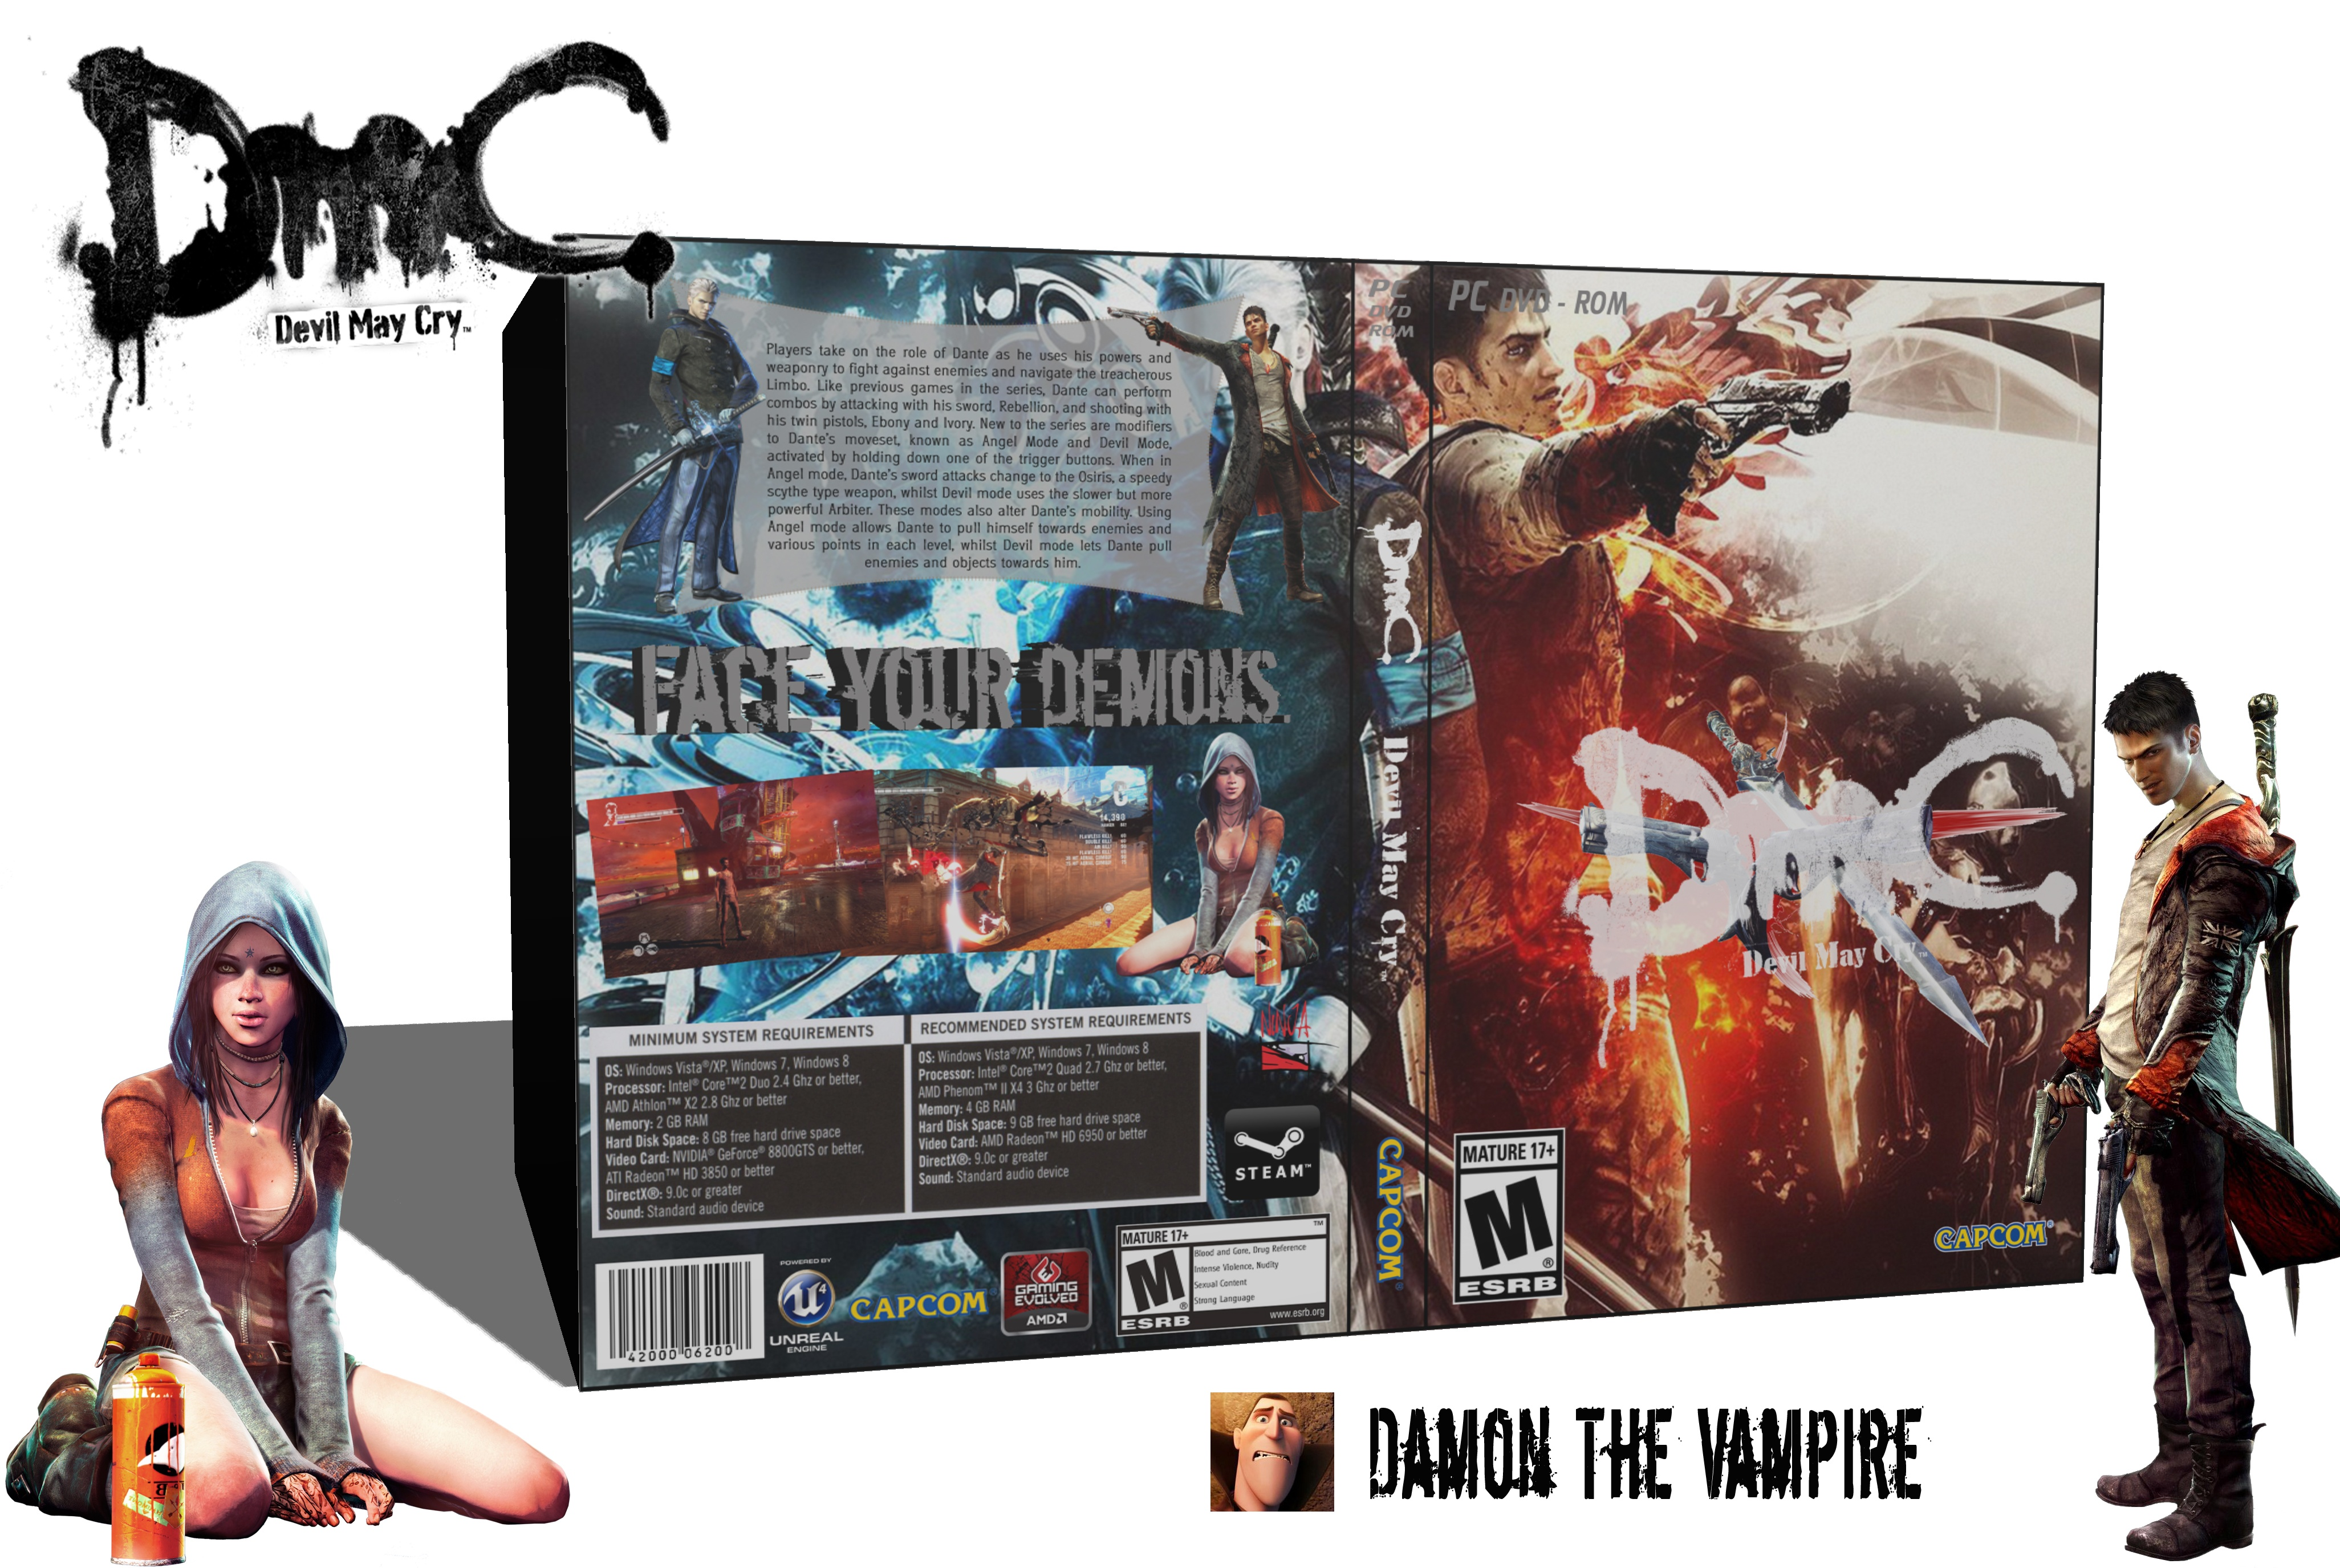 DmC Devil May Cry box cover